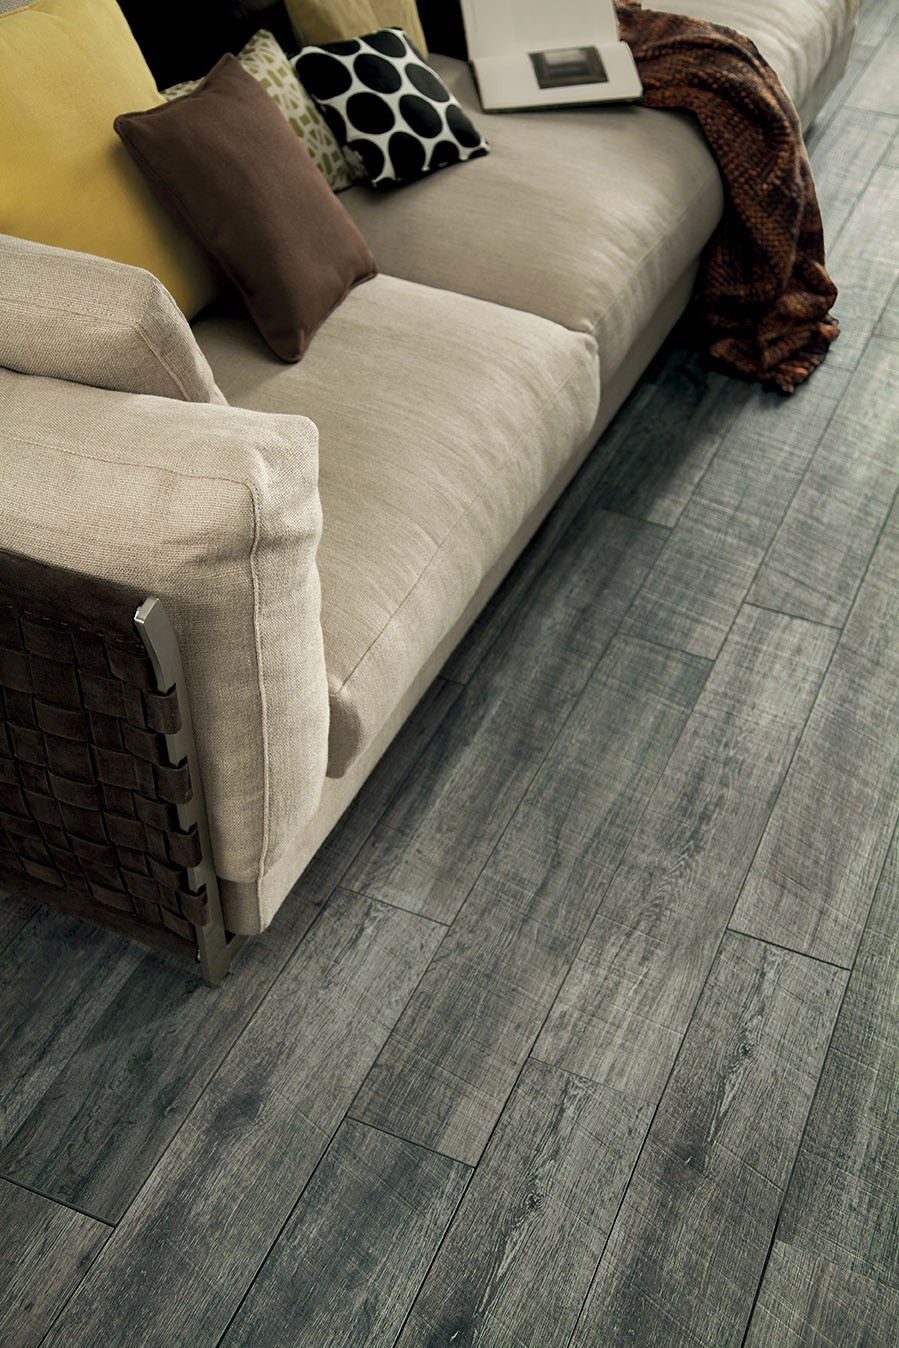 Parquet gris anthracite meilleures images d 39 inspiration for Carrelage 80x80 gris anthracite